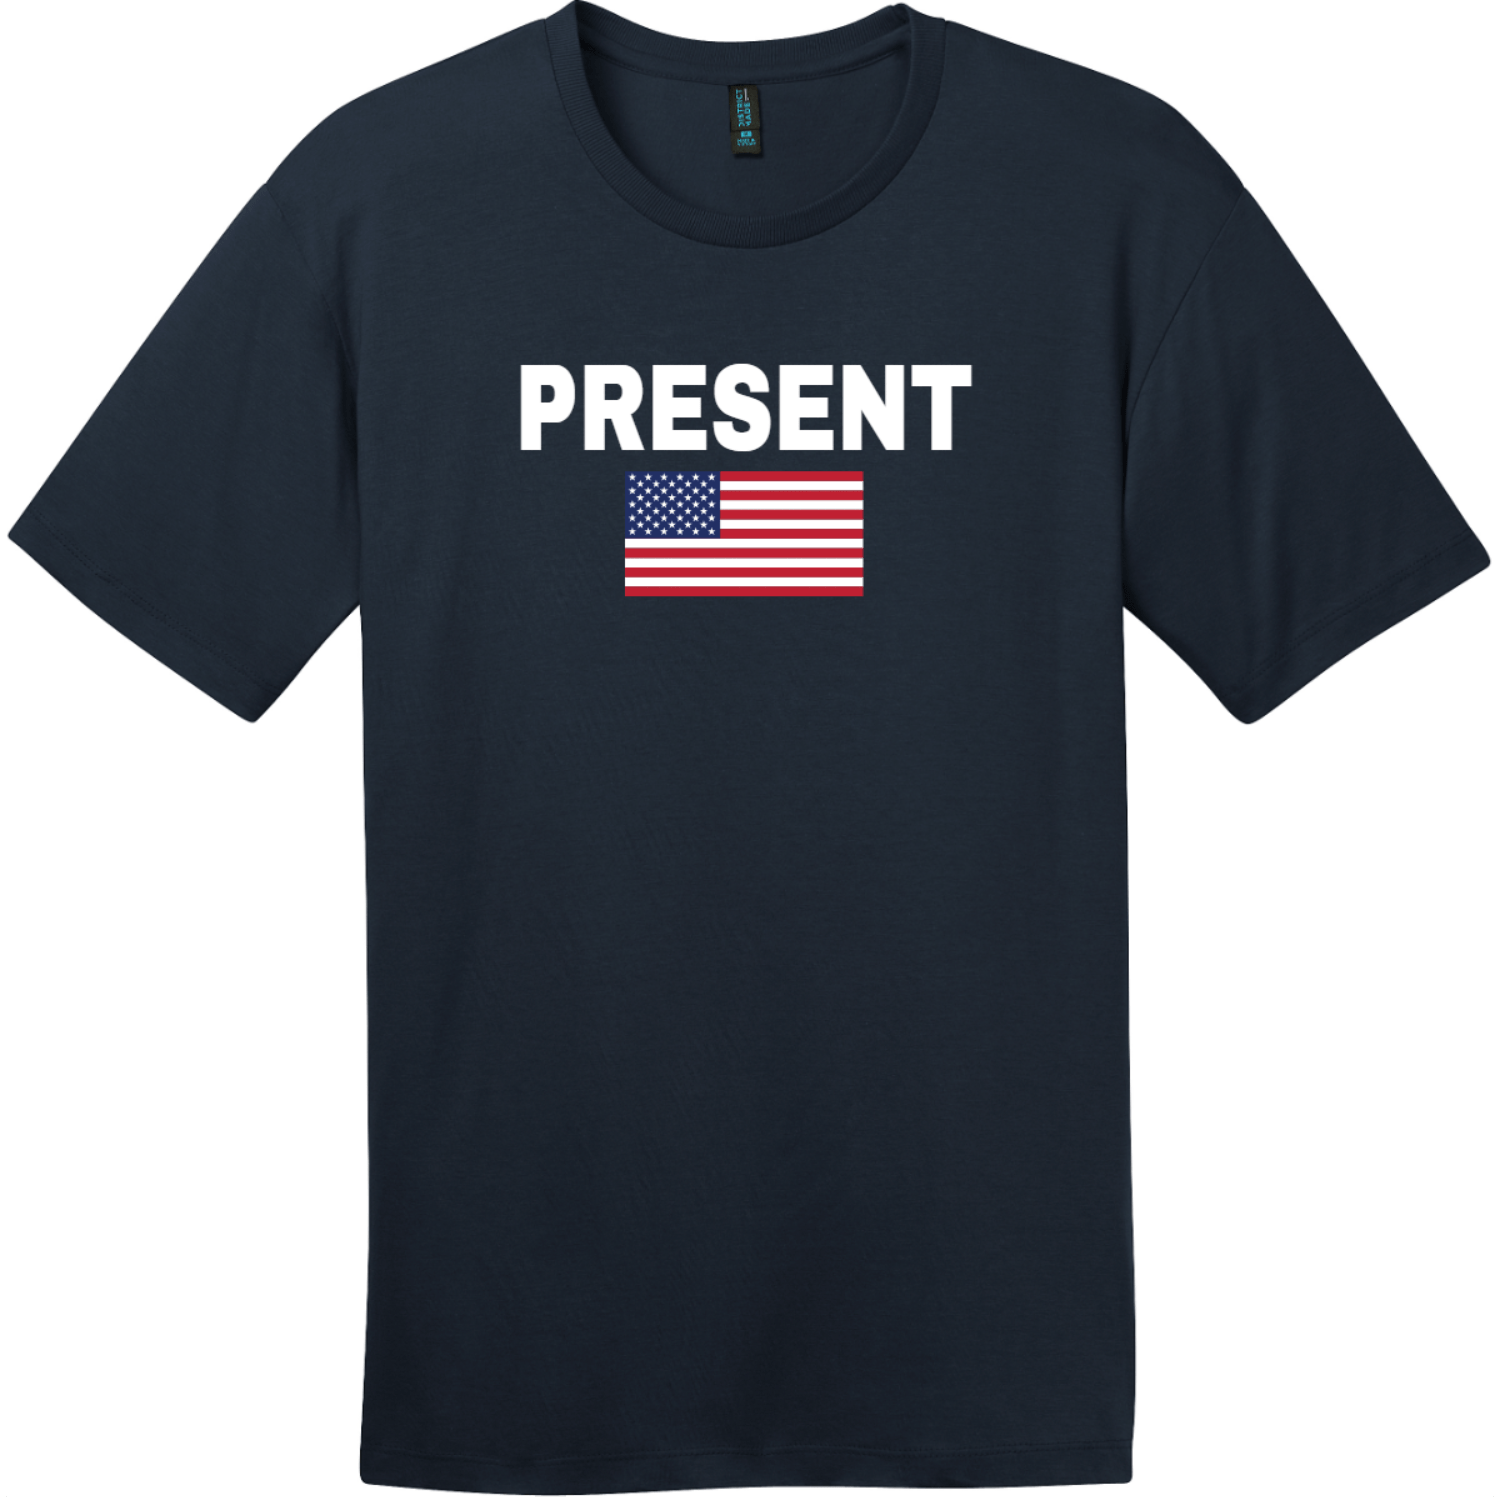 Present Vote American Flag T-Shirt New Navy District Perfect Weight Tee DT104